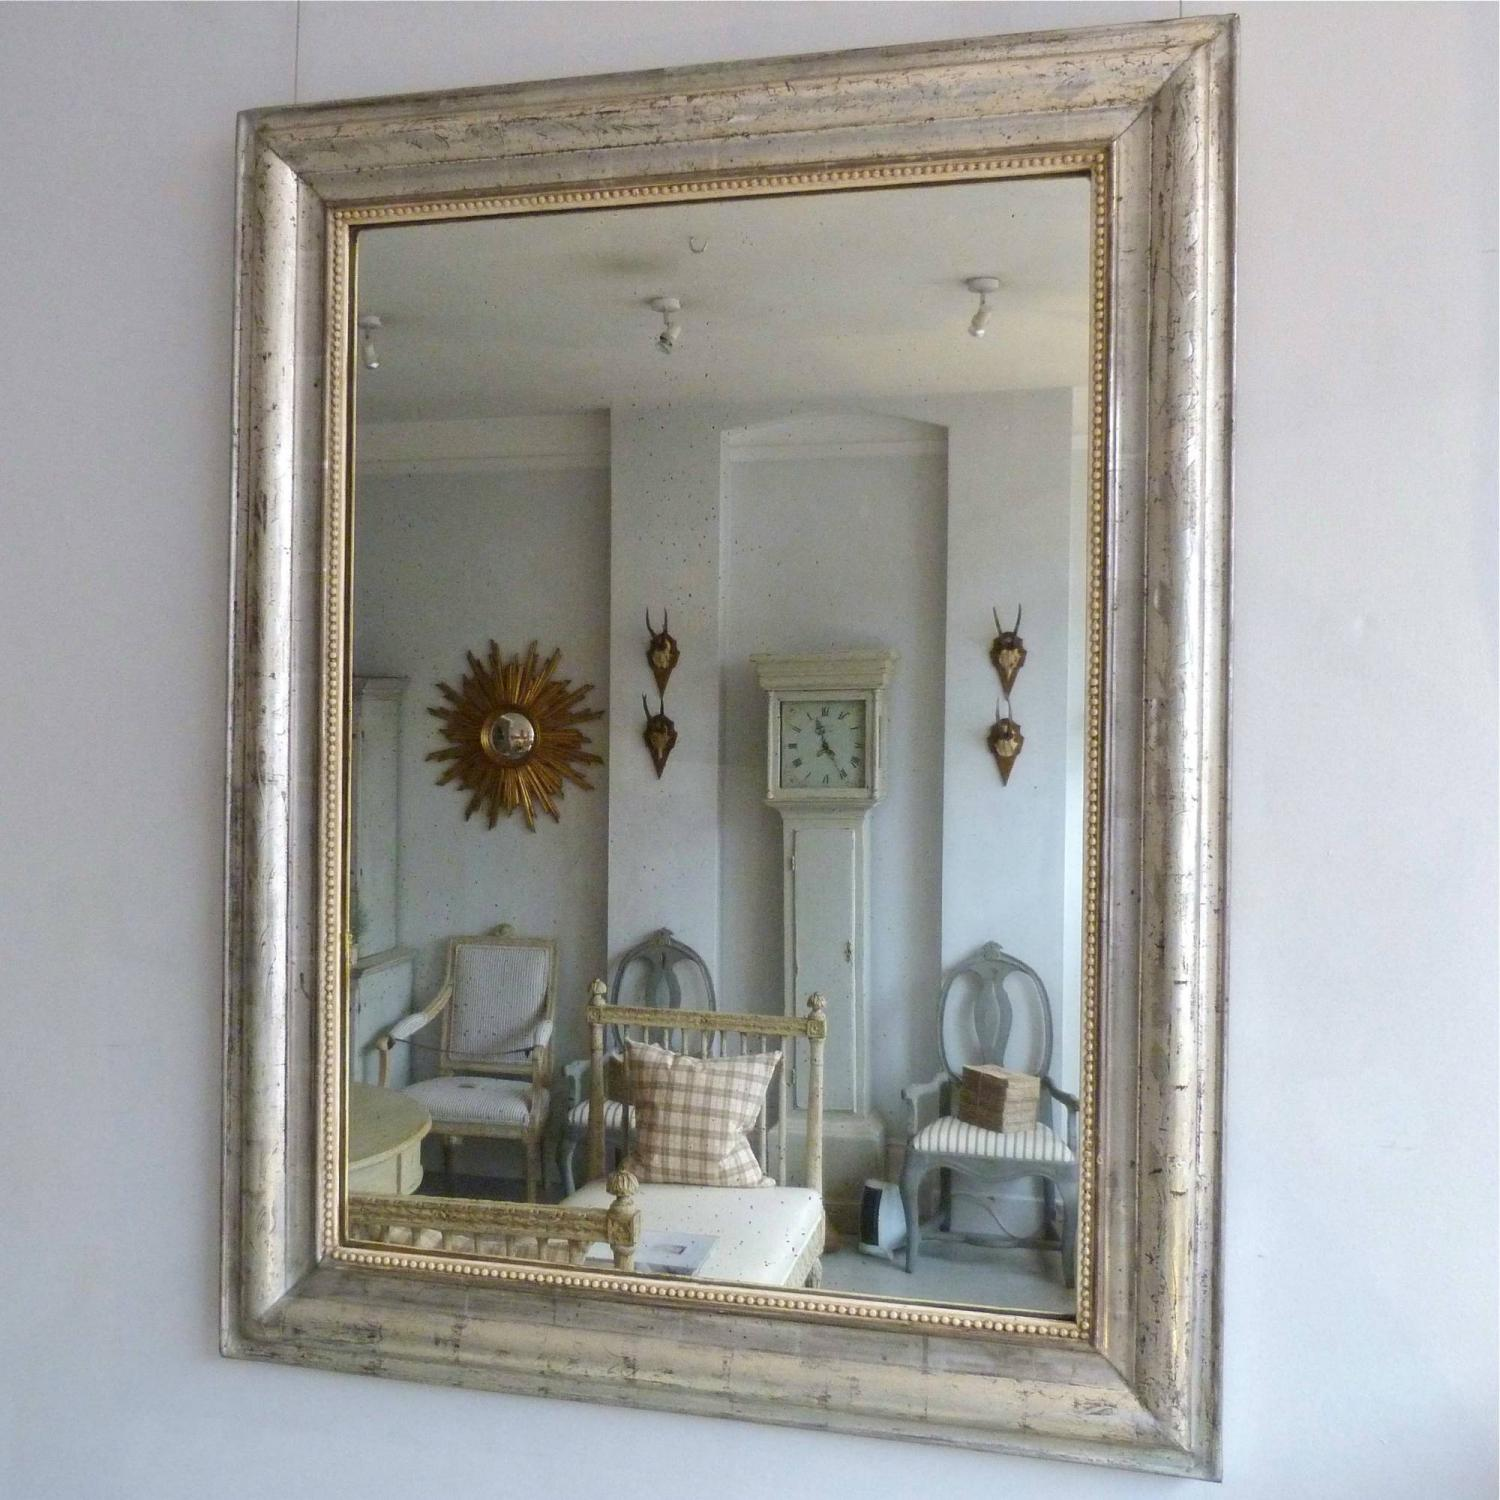 SILVER LOUIS PHILIPPE MIRROR WITH BEADED FRAME